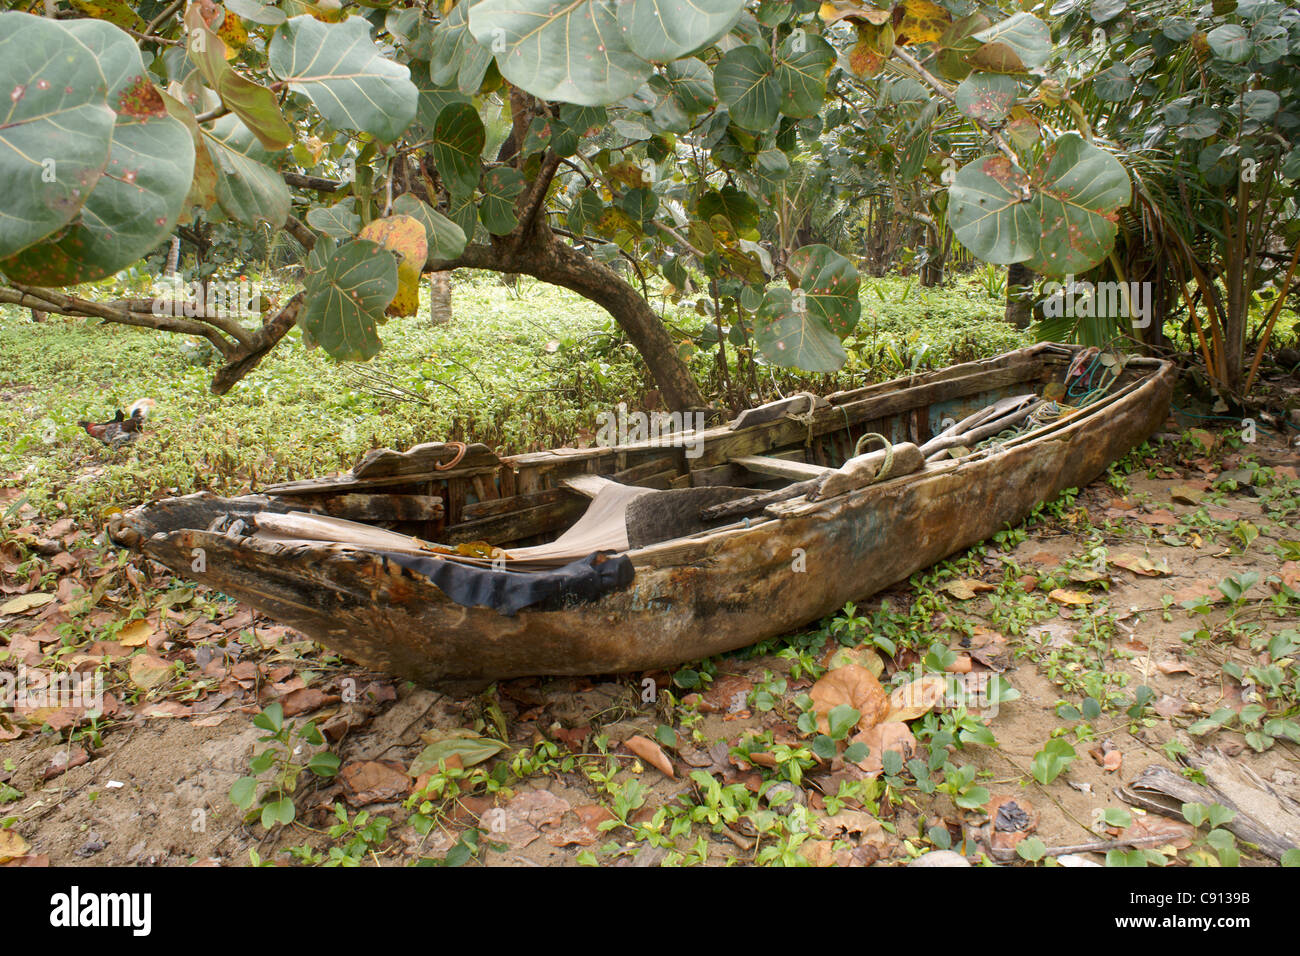 local people put to sea in dug out canoes to fish samana dominican